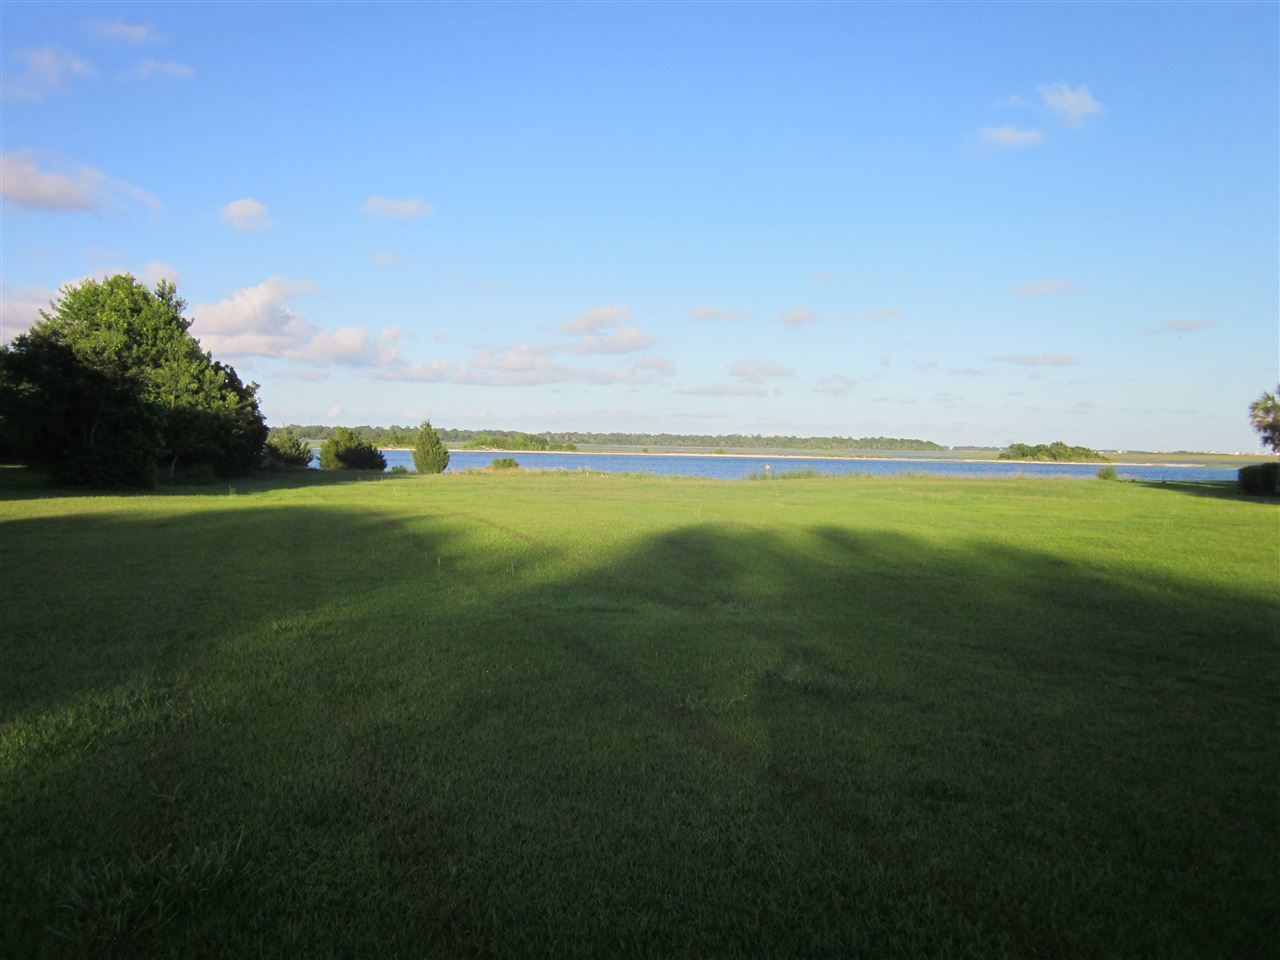 Prime waterfront lot in Hurst Harbor. This lot has fantastic views of Swansboro, Intracoastal Waterway and even some ocean views from Bogue Inlet and also has a private beach on Foster's Bay. This quiet subdivision has it's own boat ramp and dock to the Intracoastal waterway for that person who is ready to enjoy ''''Paradise'''' Swansboro style